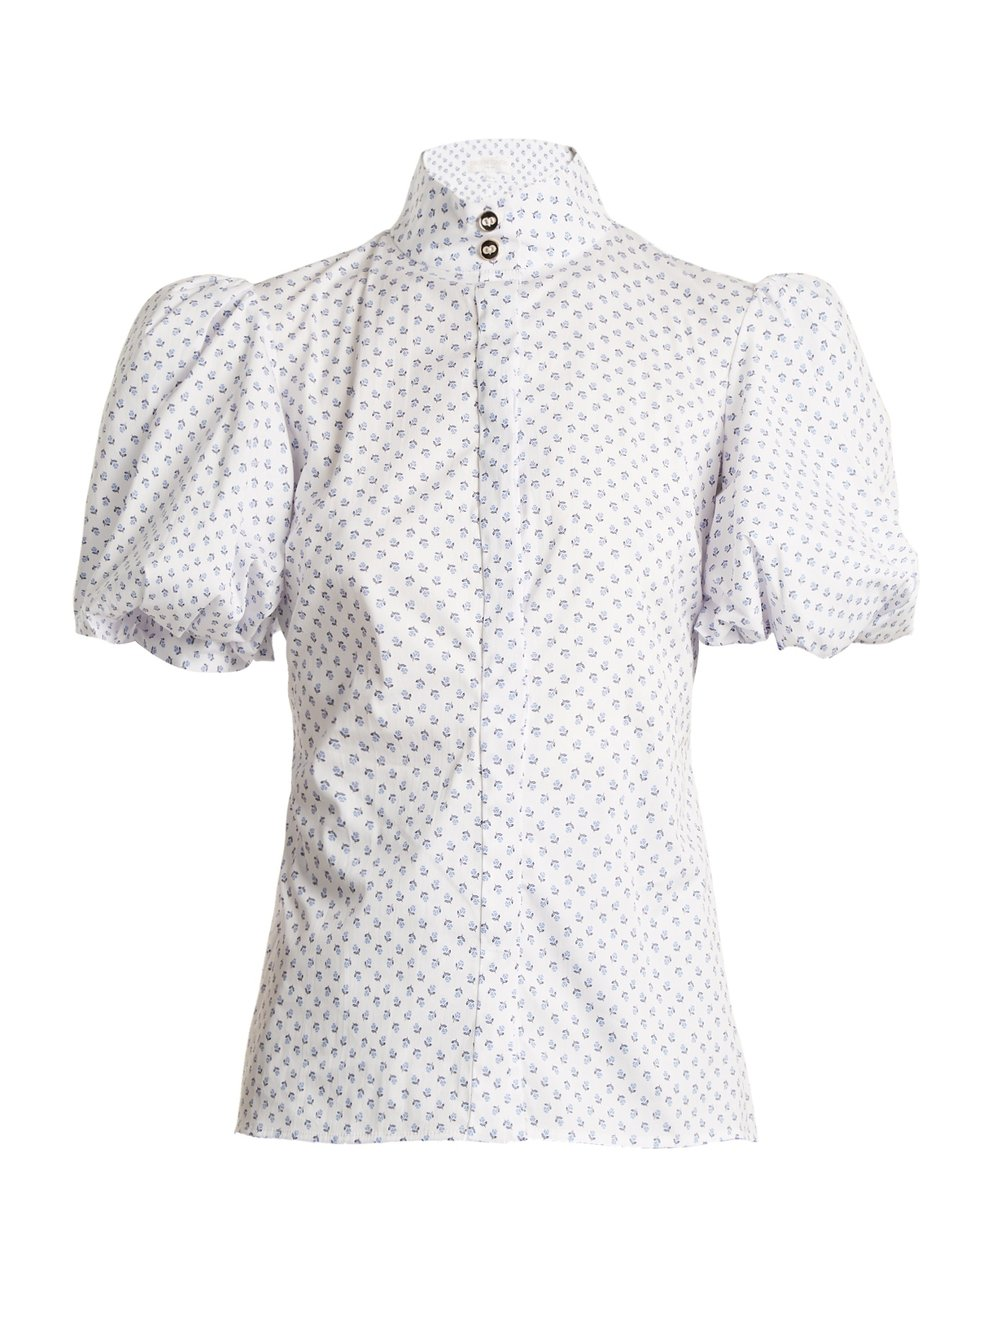 caroline constas white high-neck top